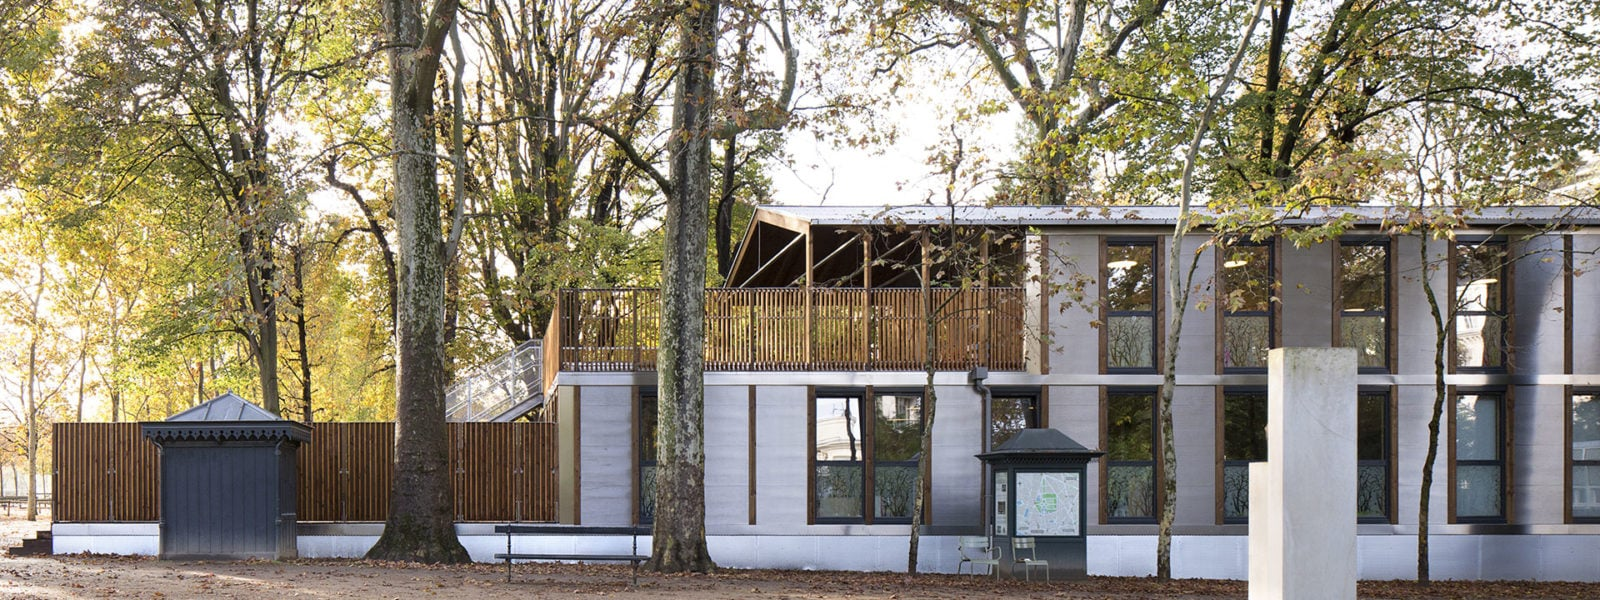 Modular and nomadic building by Djuric Tardio architectes